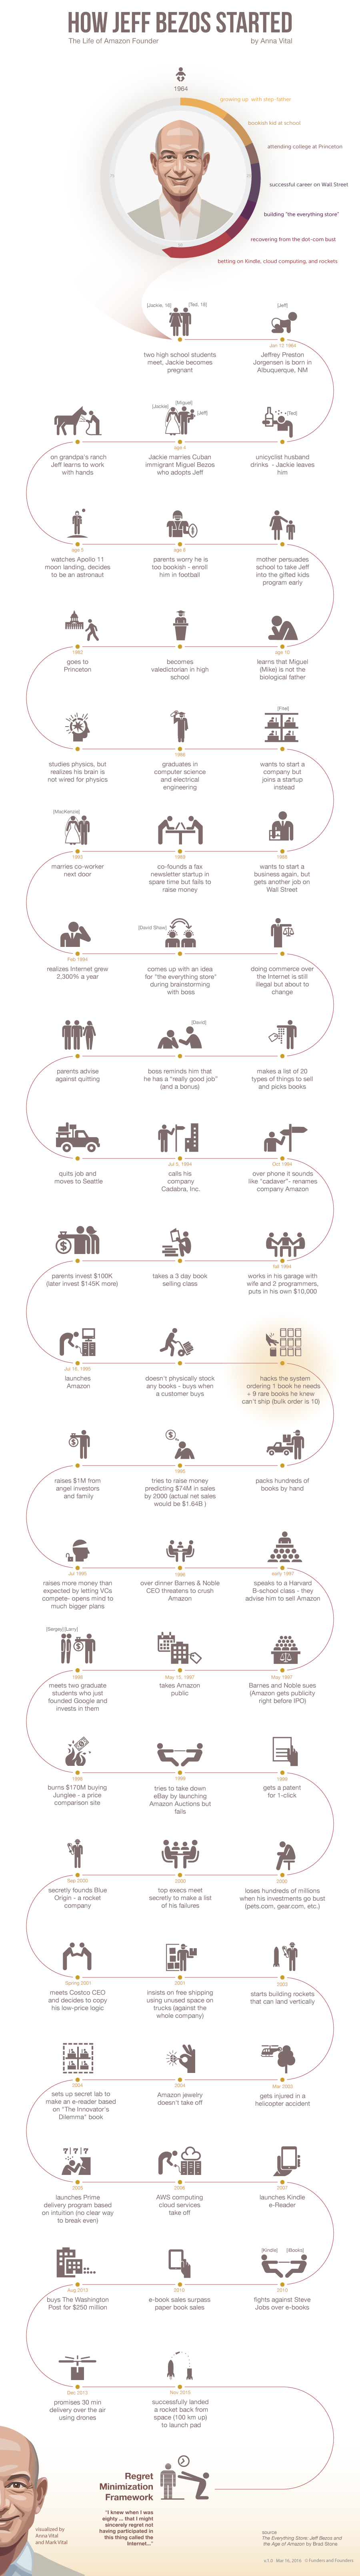 how-jeff-bezos-started